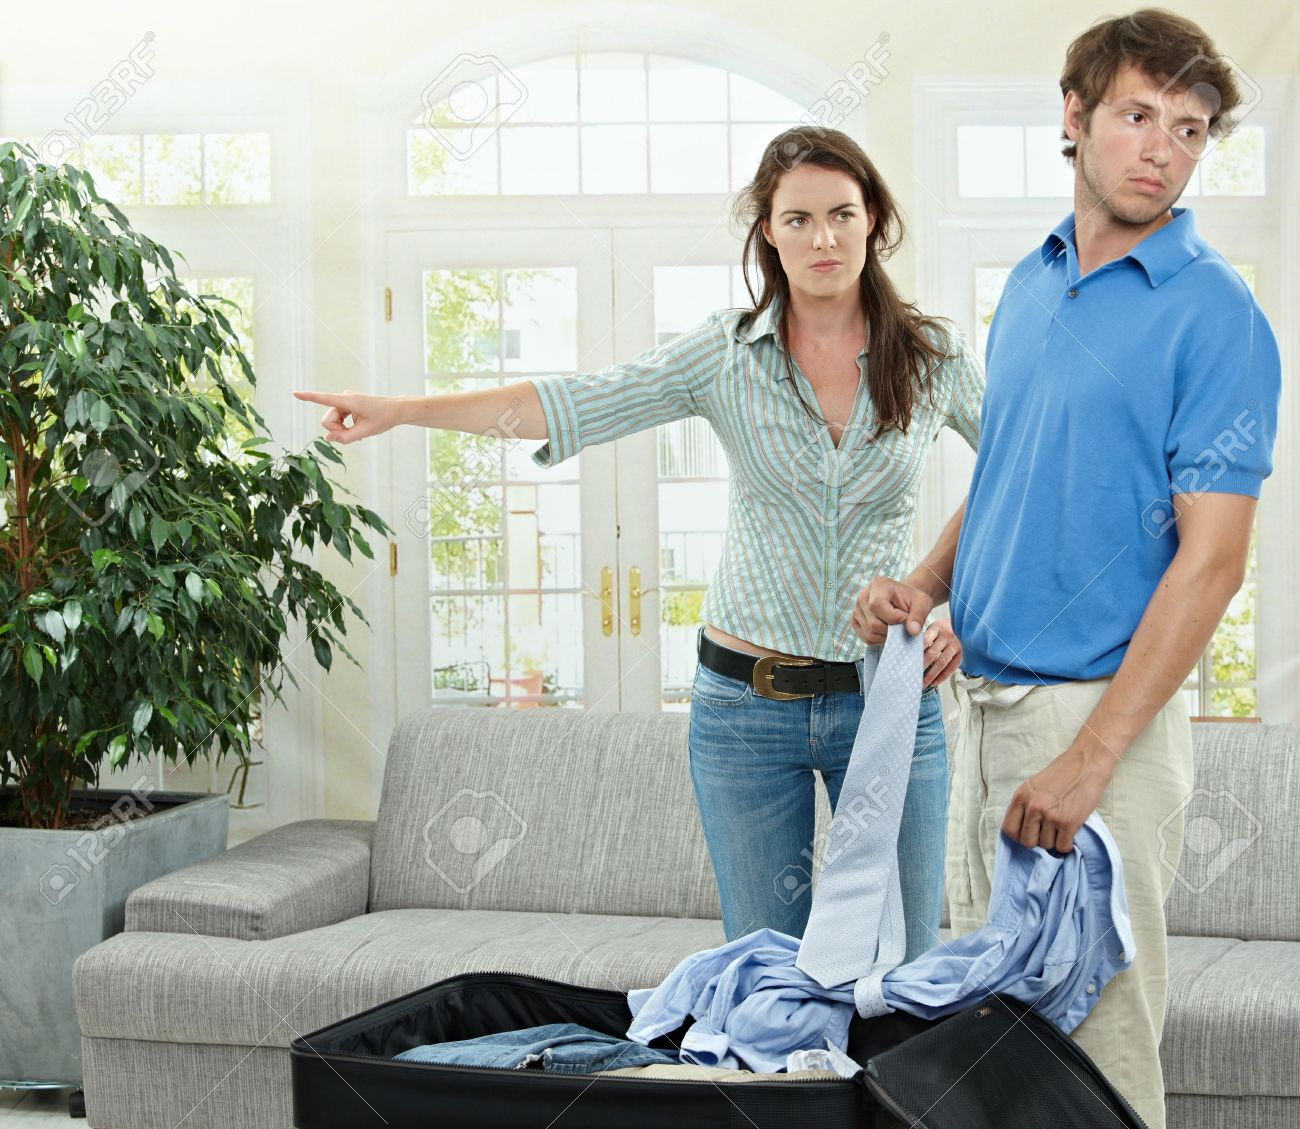 Unhappy couple breaking. Angry woman pointing out, man packing his clothes into suitcase. Stock Photo - 5754779